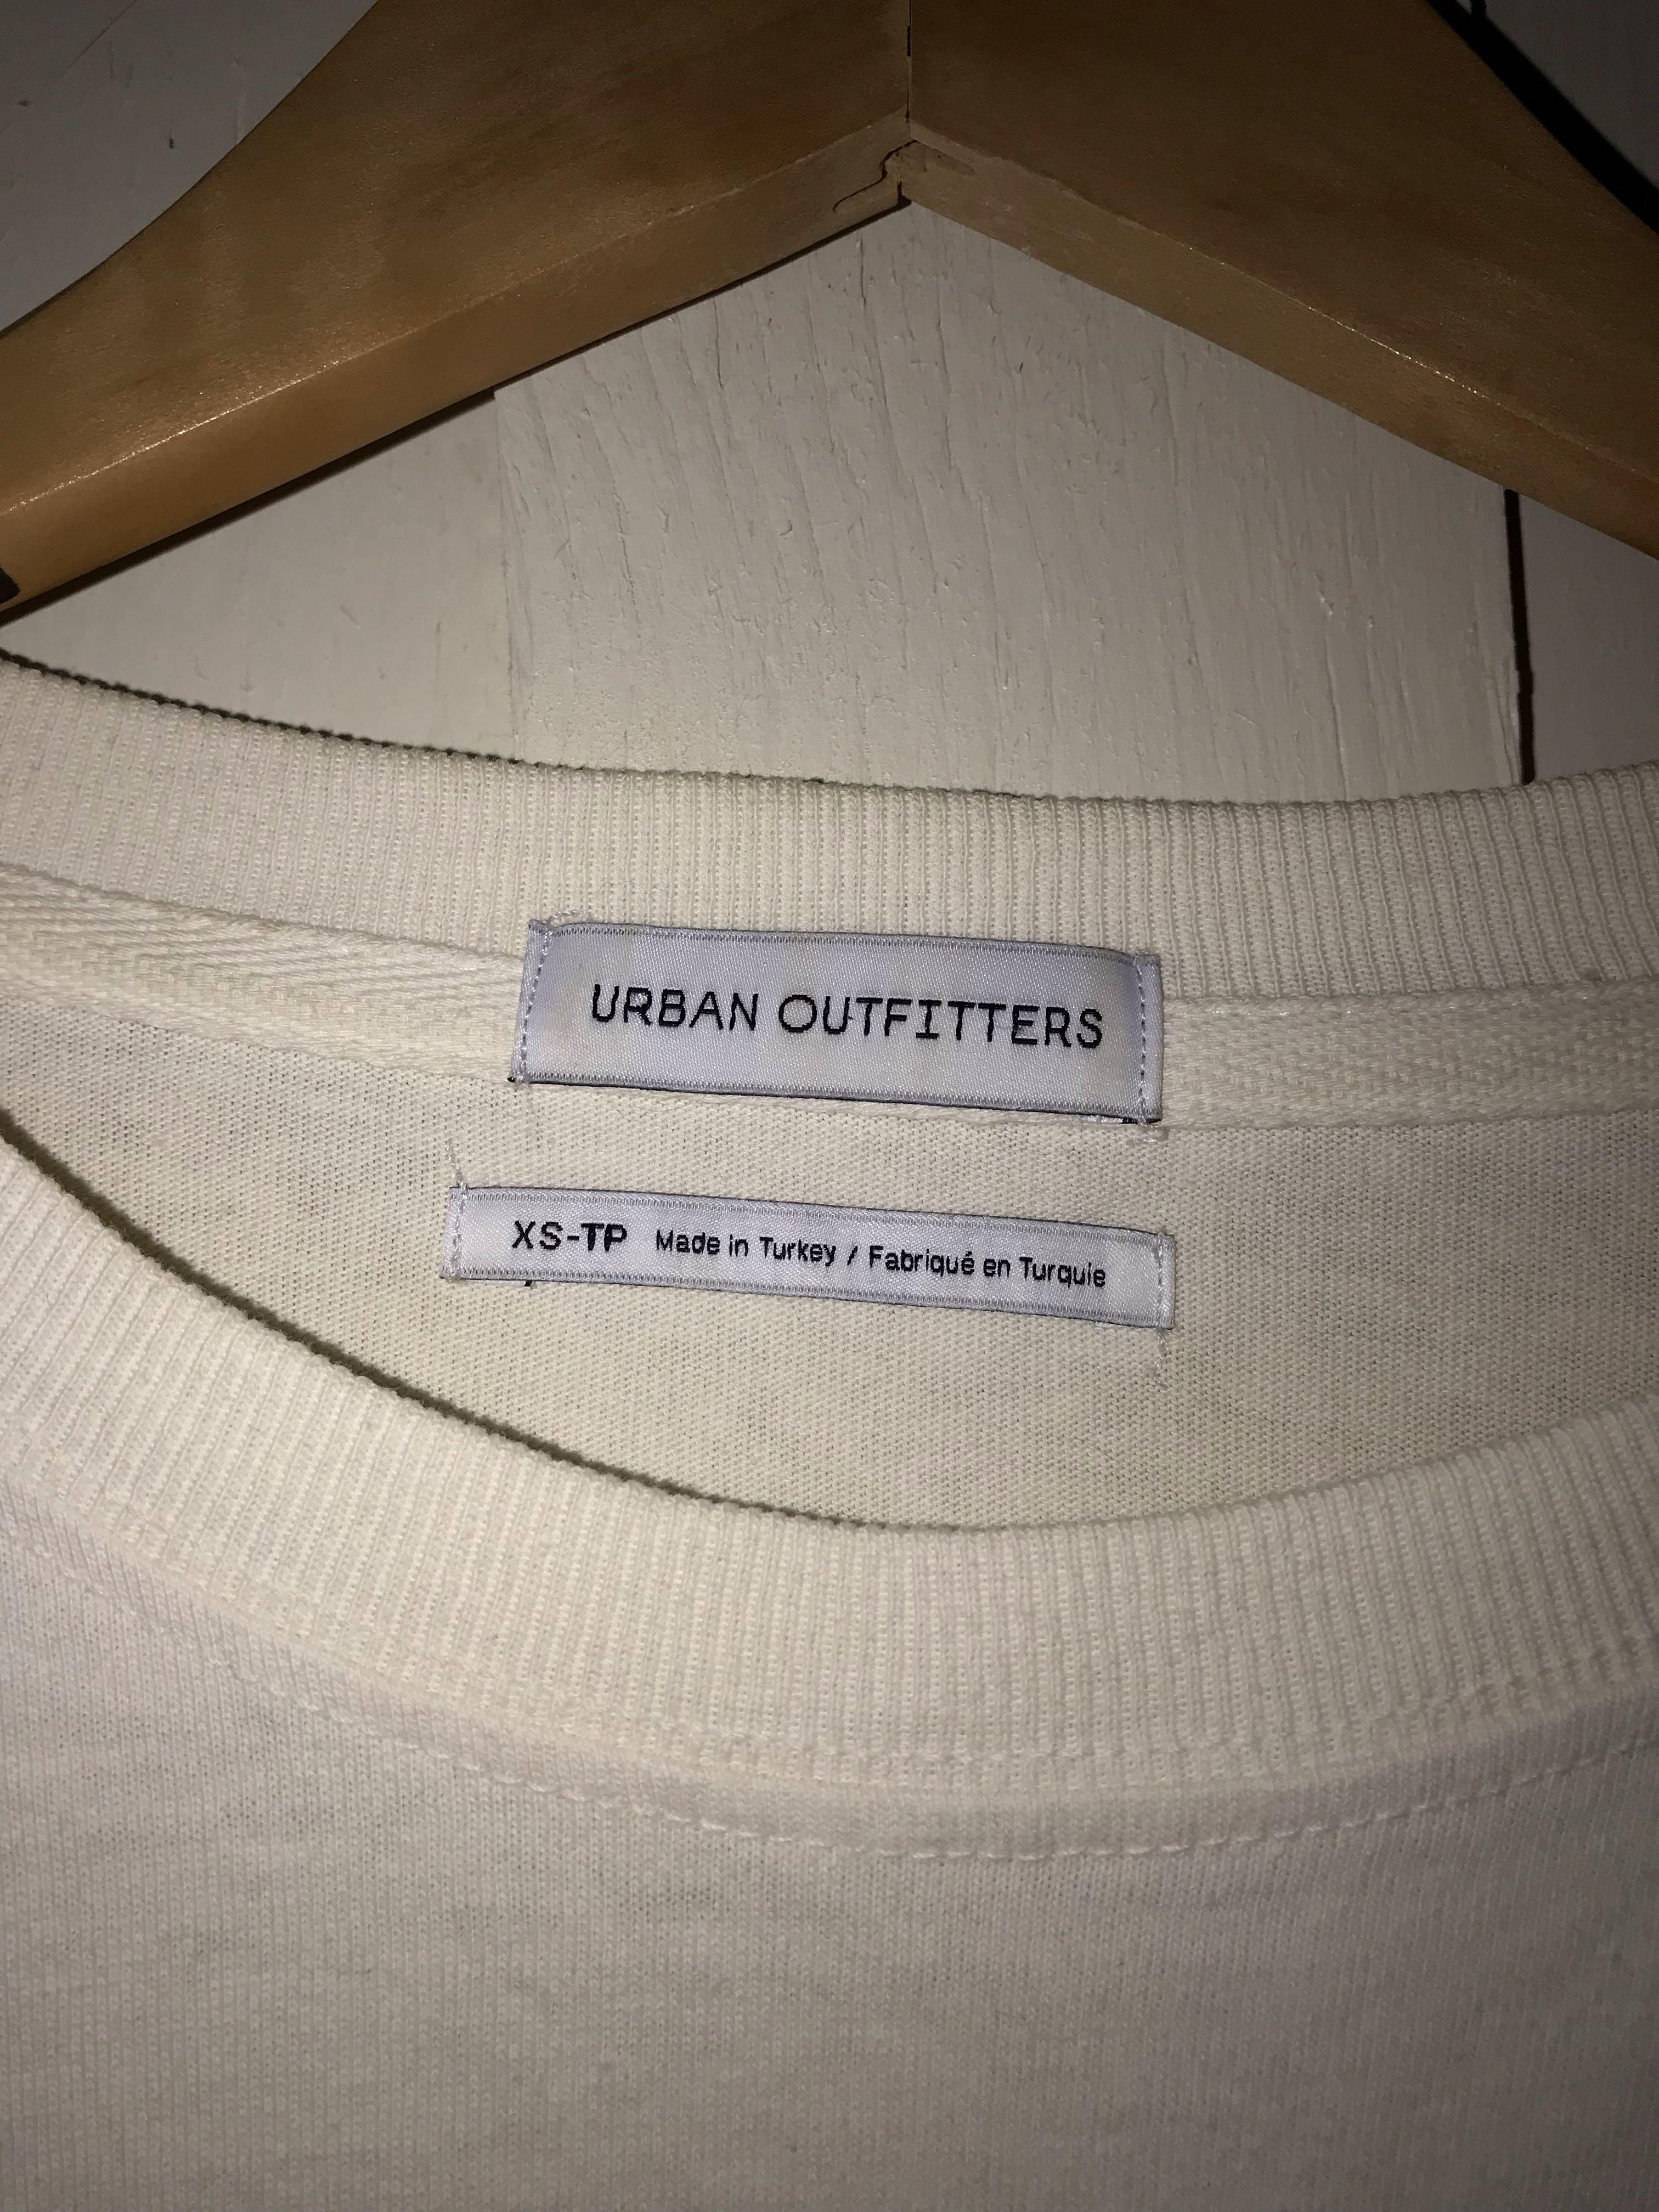 URBAN OUTFITTERS off white plain shirt